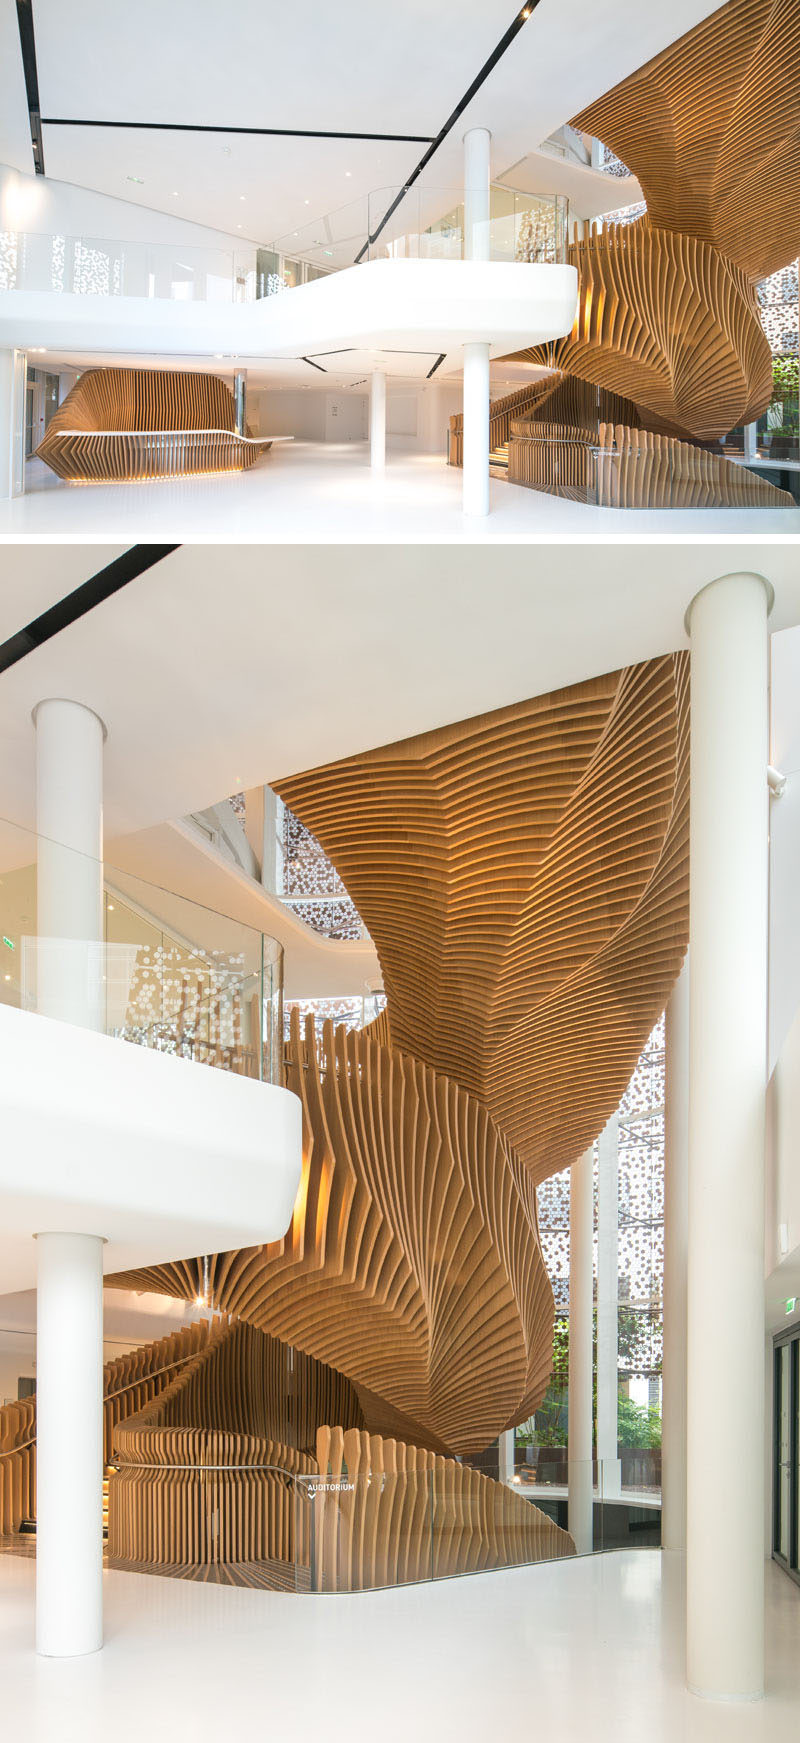 This large, sculptural, snake-like, wood staircase was installed in a new office building in France to connect the four floors of the building. #WoodStairs #SculpturalStairs #StairDesign #OfficeDesign #Stairs